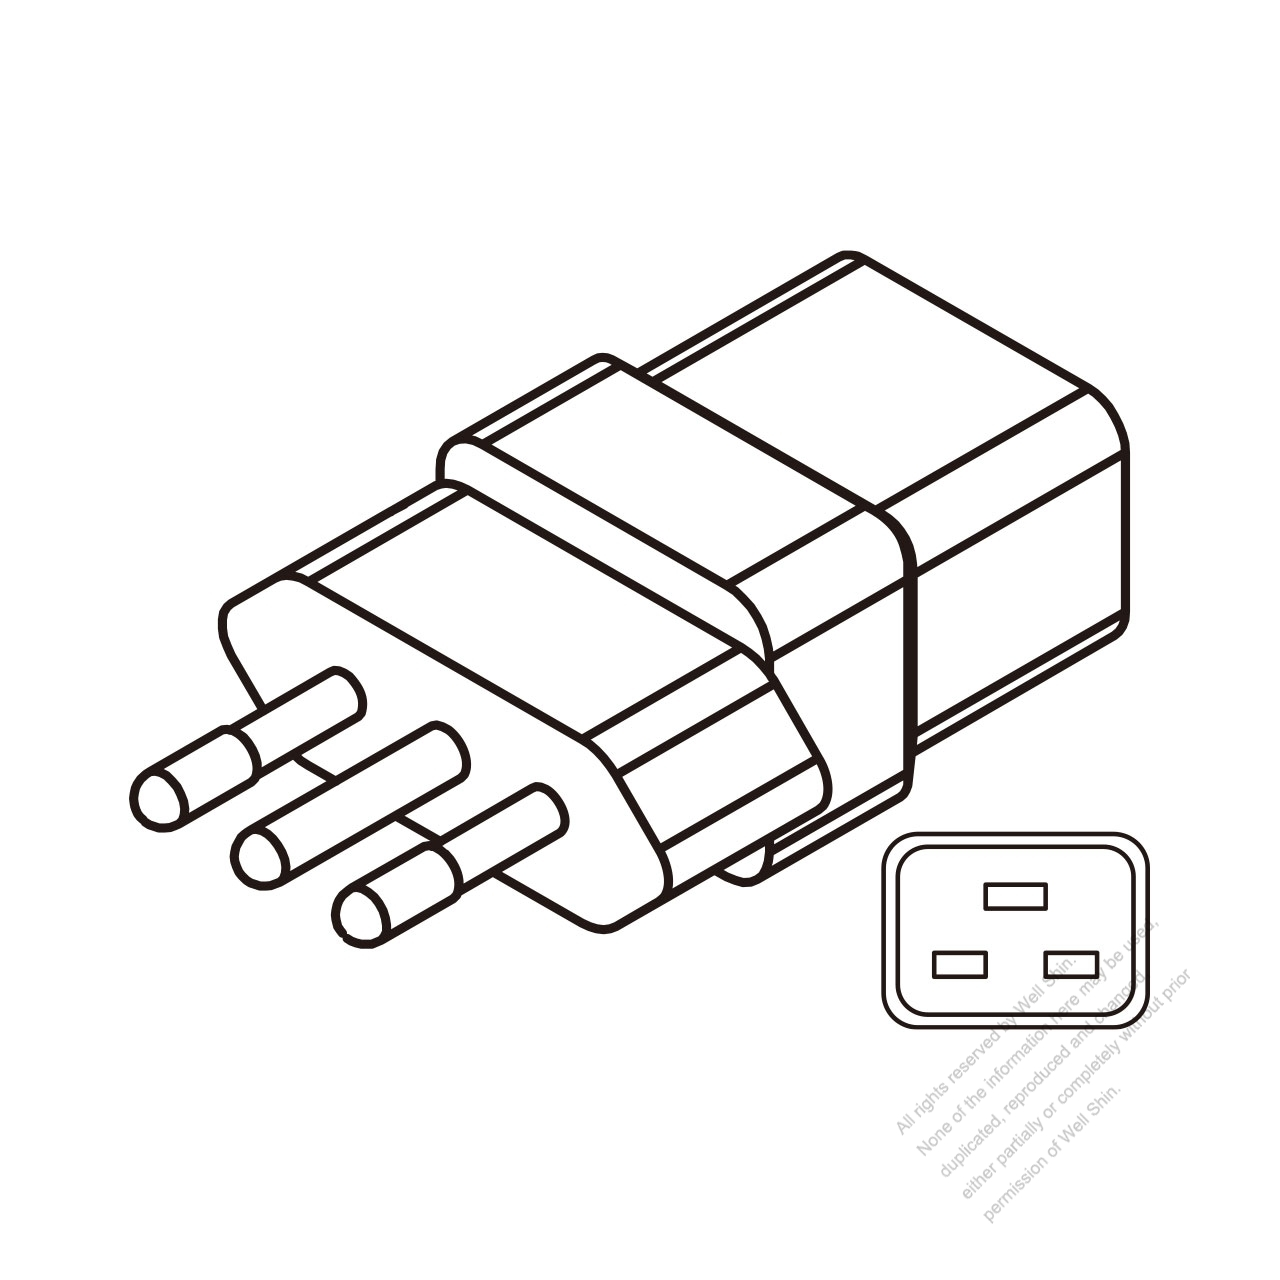 Adapter Plug, Italy to IEC 320 C19 Female Connector 3 to 3